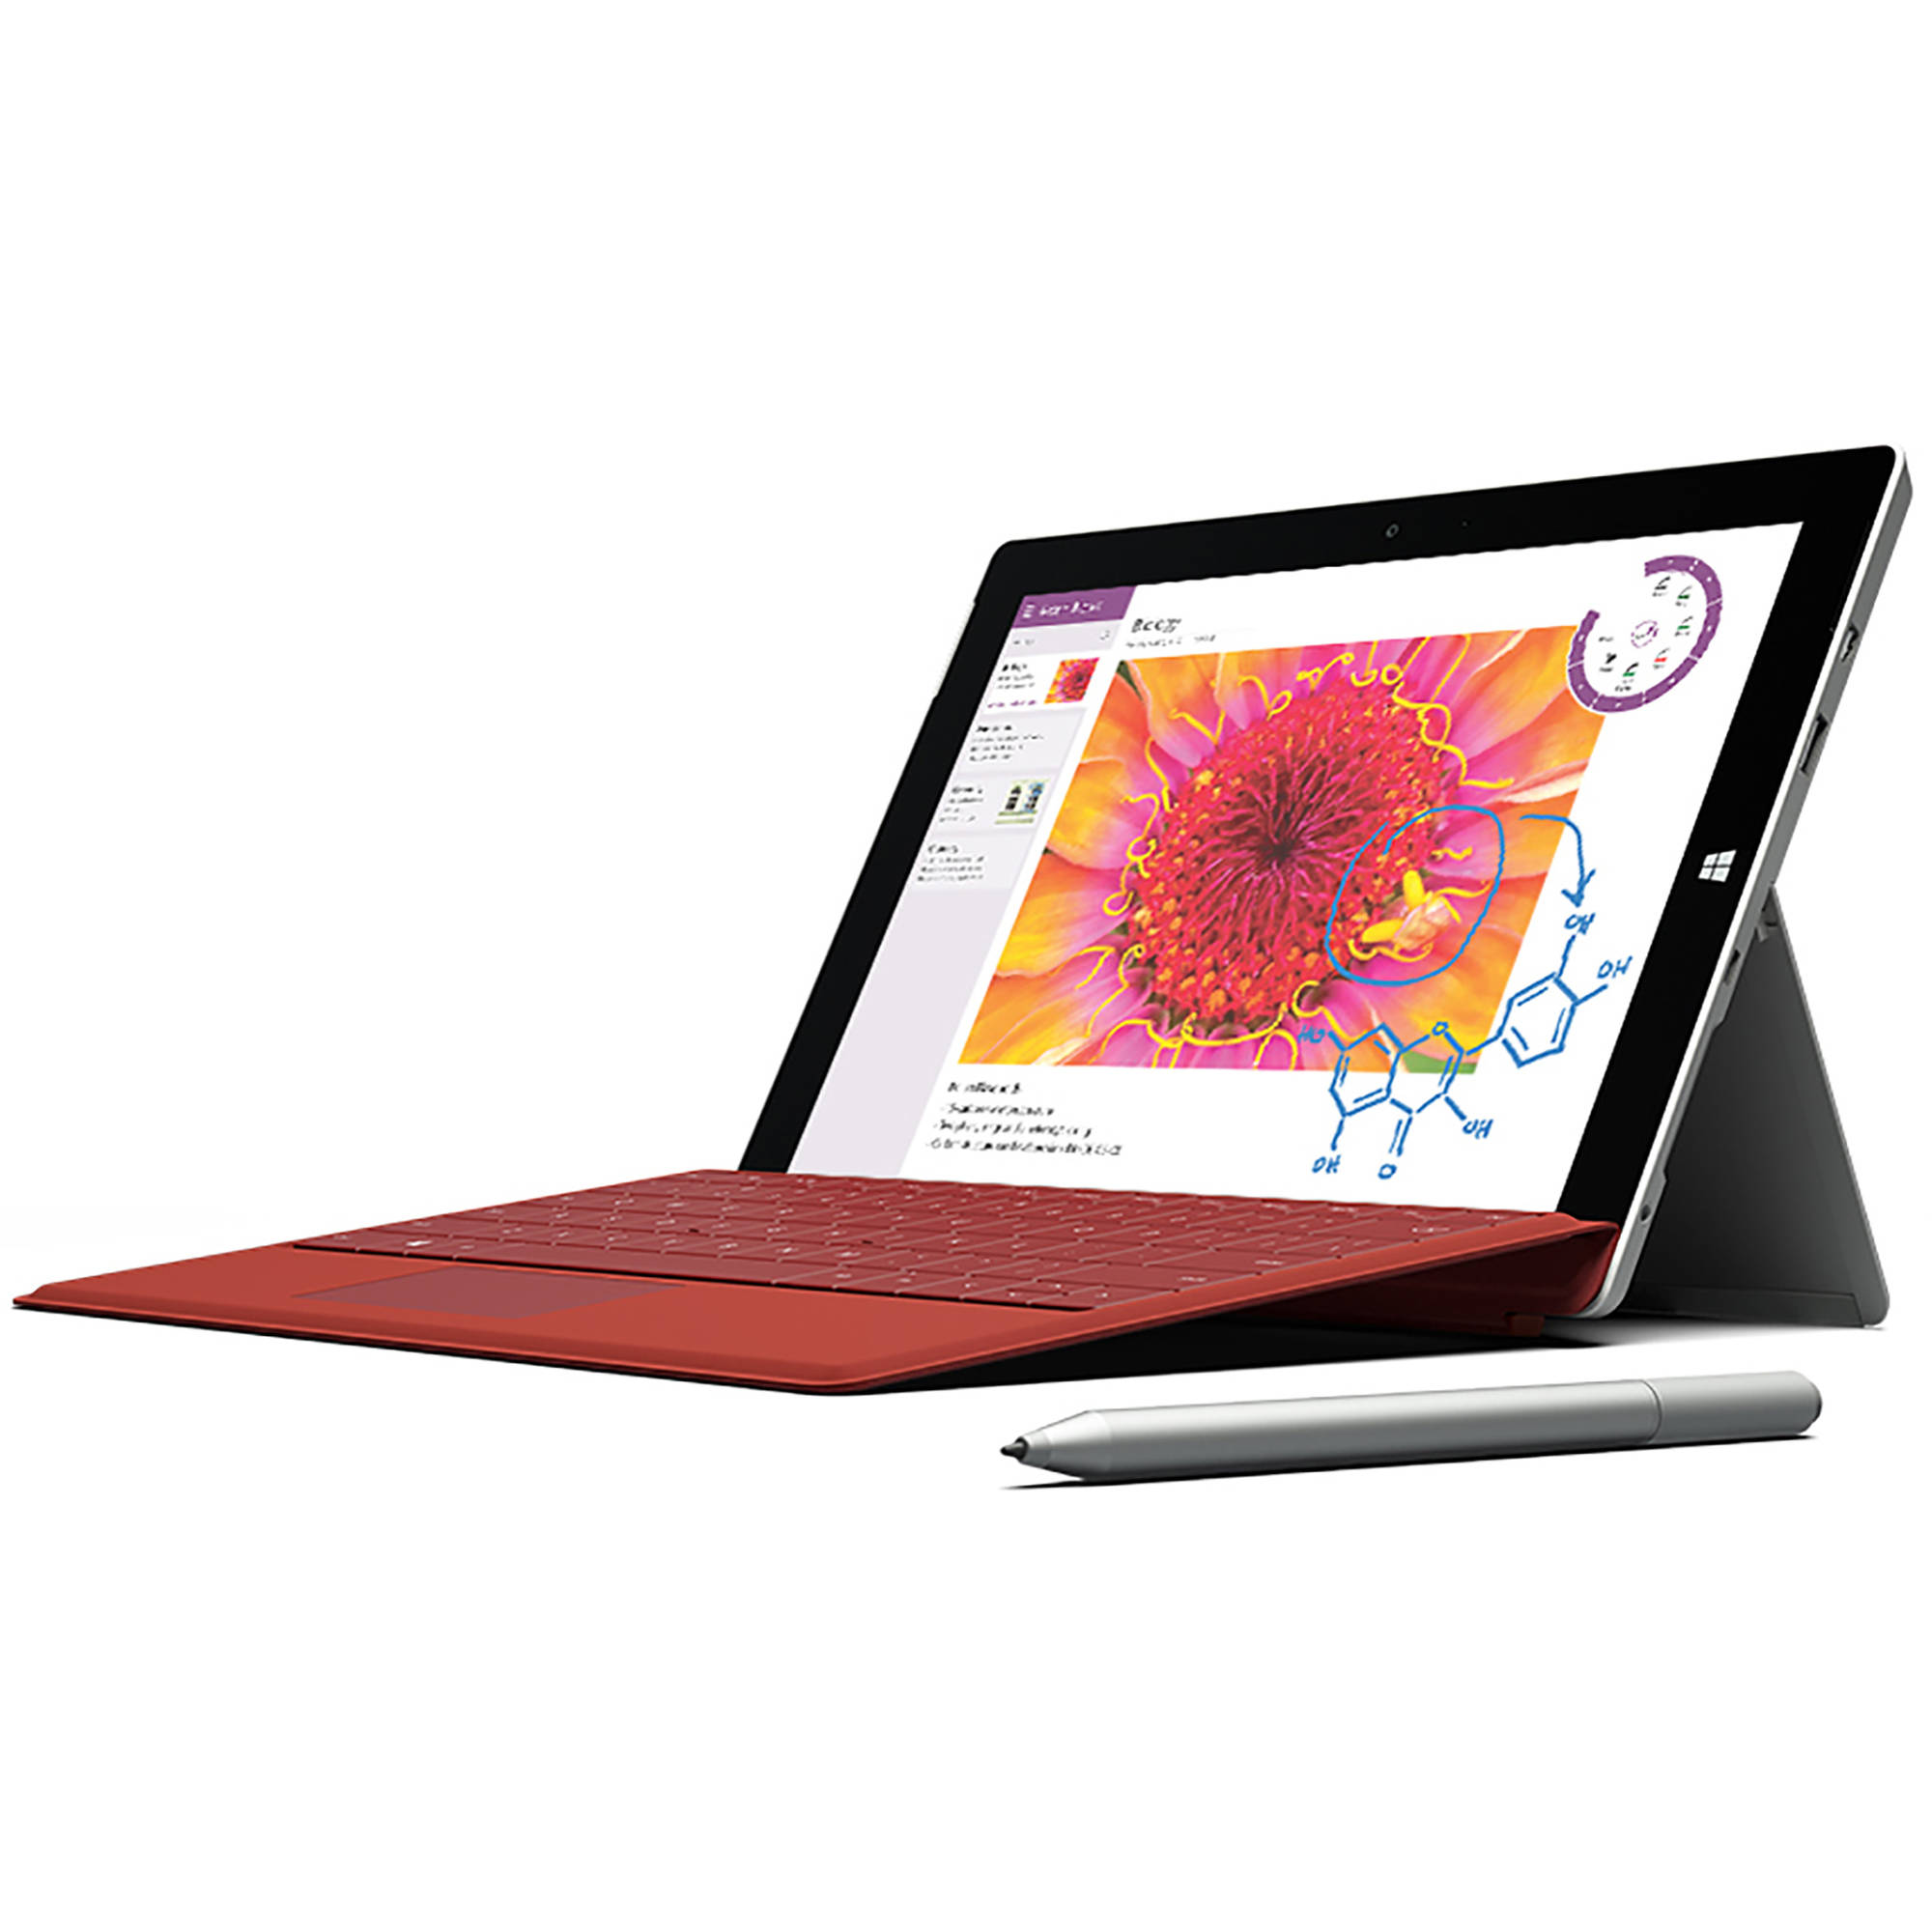 "Microsoft Surface 3 10.8"" Tablet 64GB Intel Atom x7 Z8700 Quad-Core Processor, Windows 10"